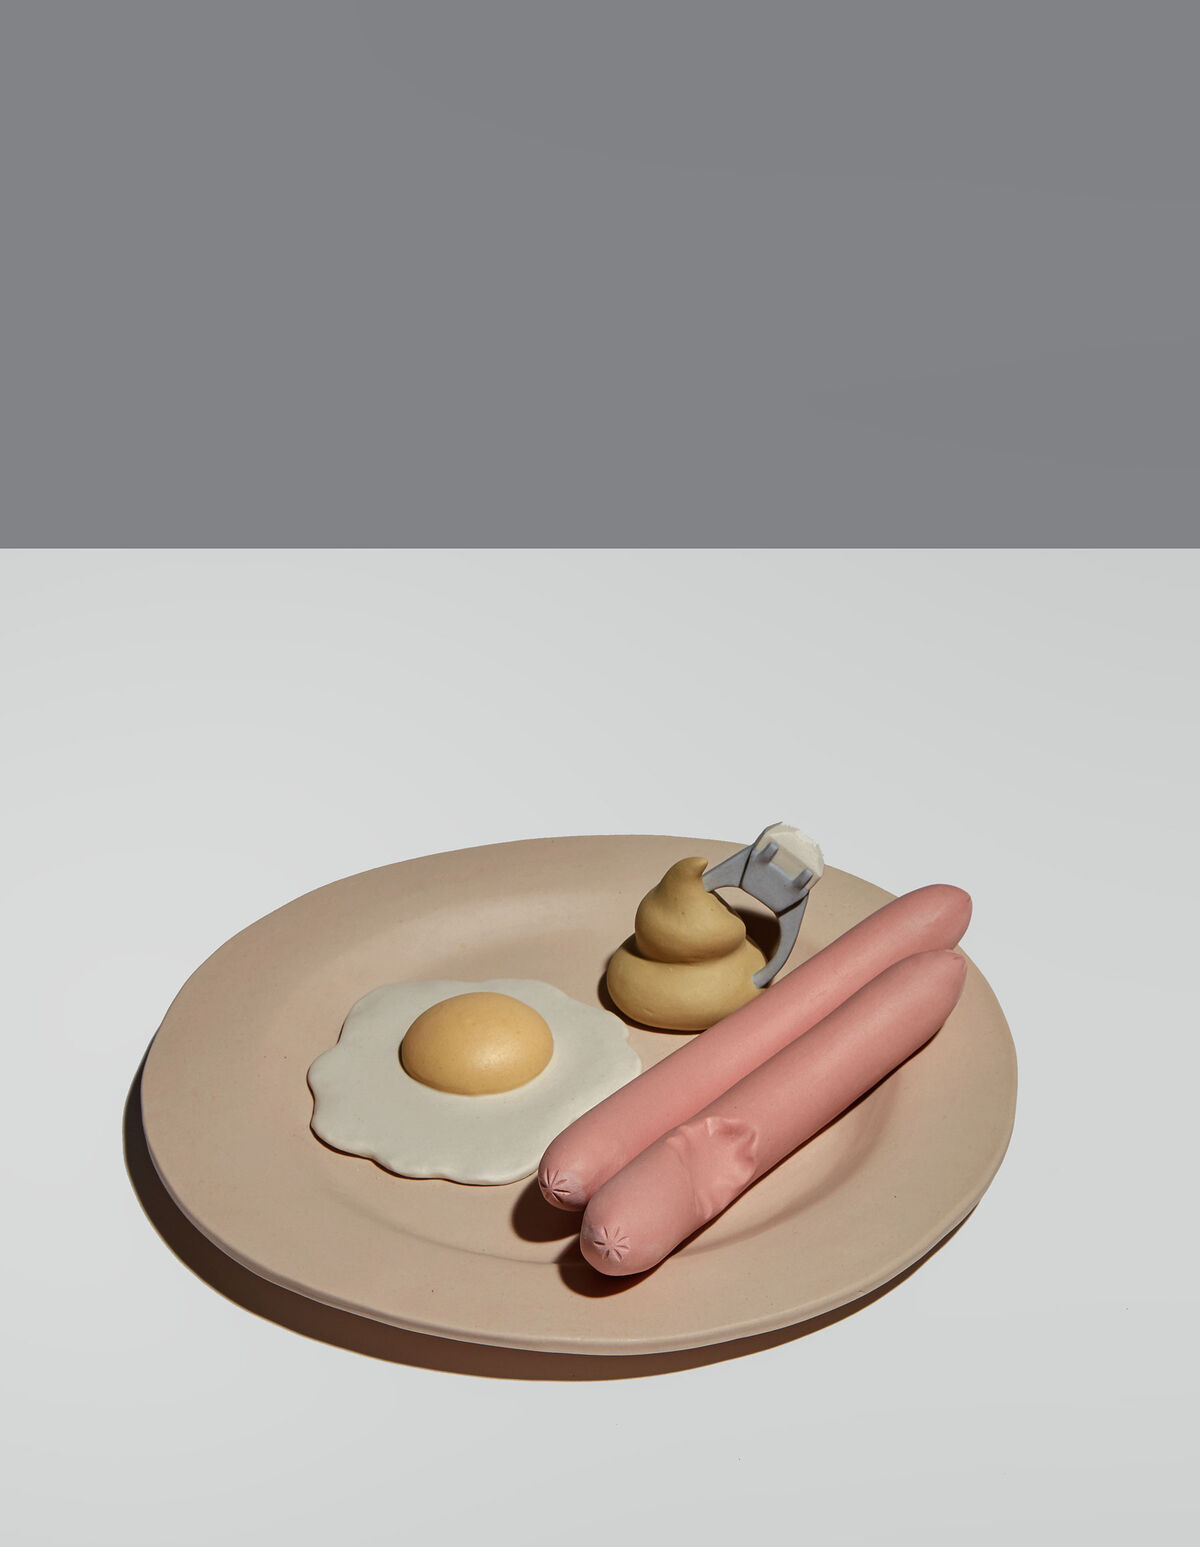 Genesis Belanger, Breakfast in Bed, 2019. Photo by Pauline Shapiro. Courtesy of the artist and Perrotin.